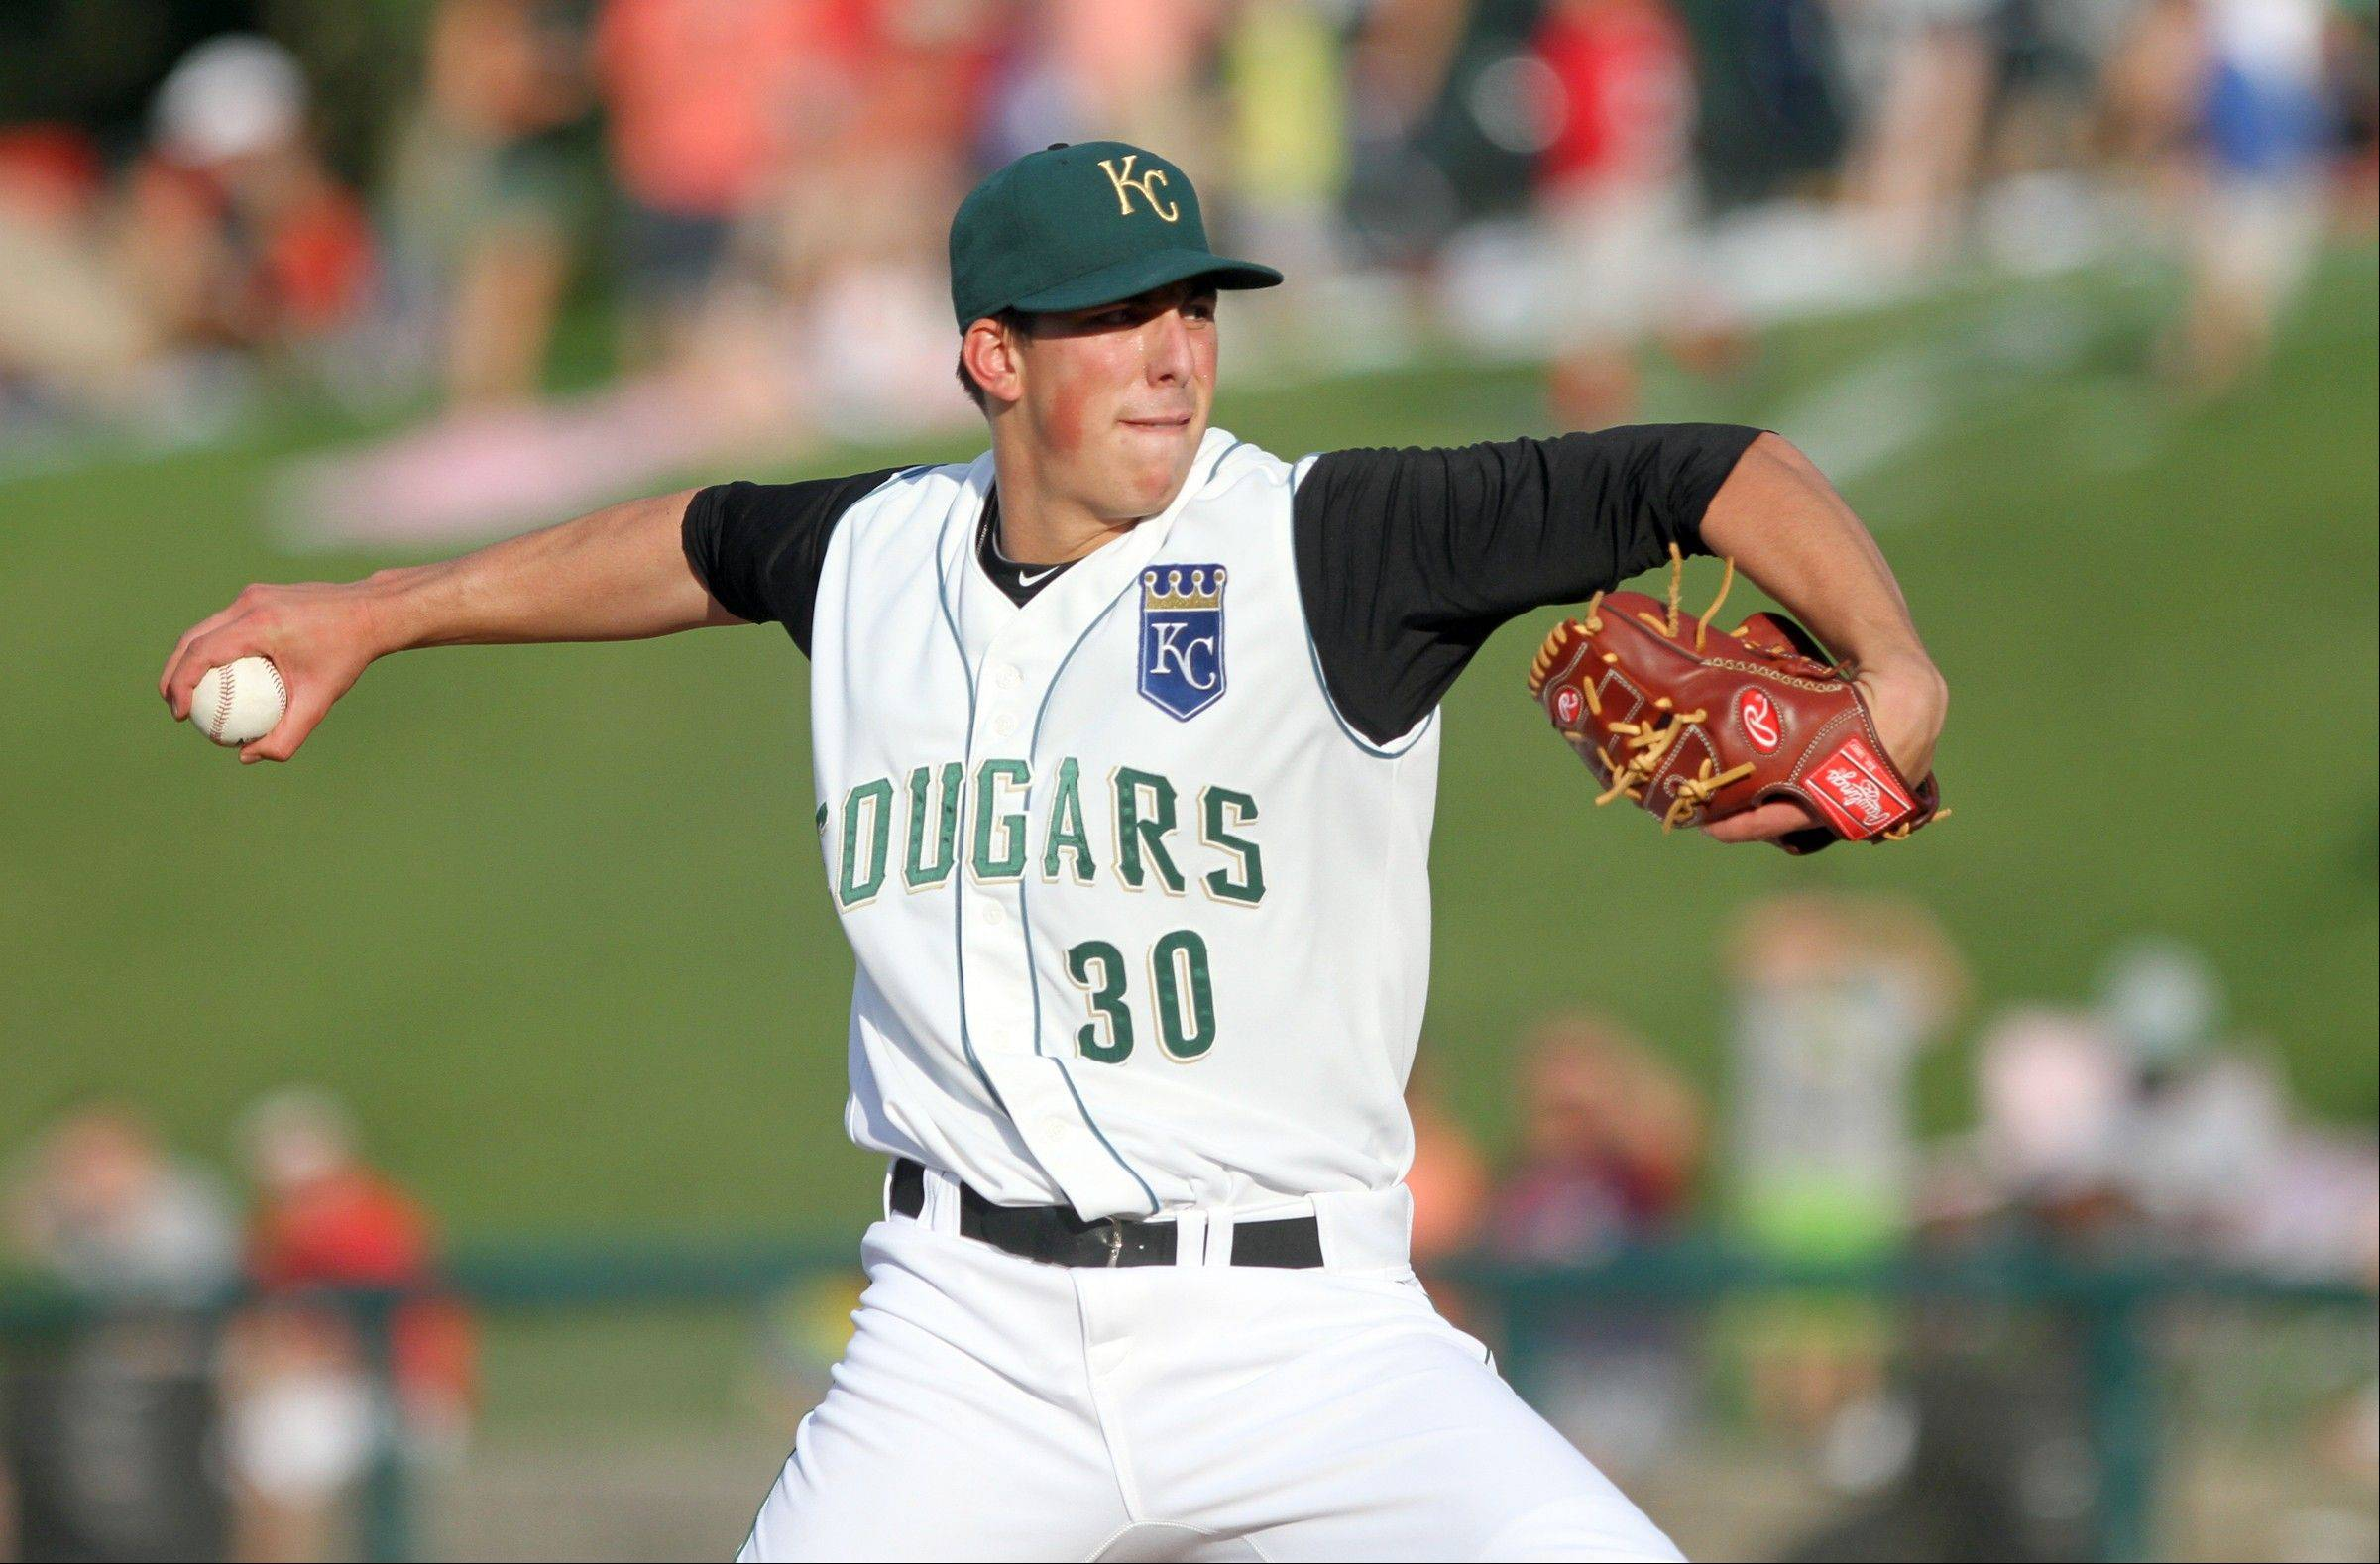 Kyle Zimmer created some buzz with his first start for the Kane County Cougars last week.